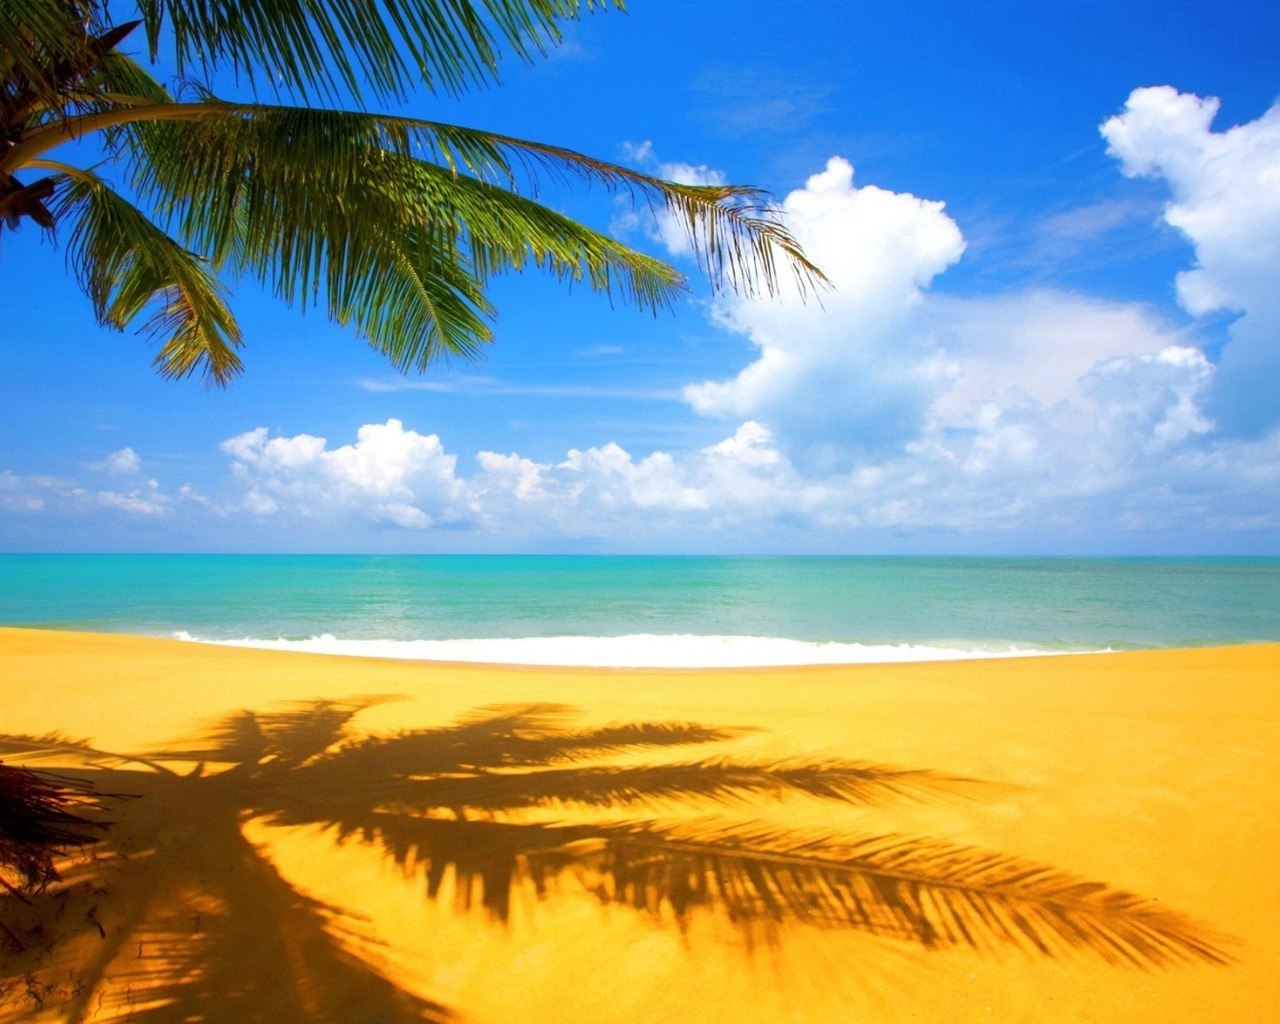 Computer Wallpaper of the Beach wallpaper wallpaper hd 1280x1024